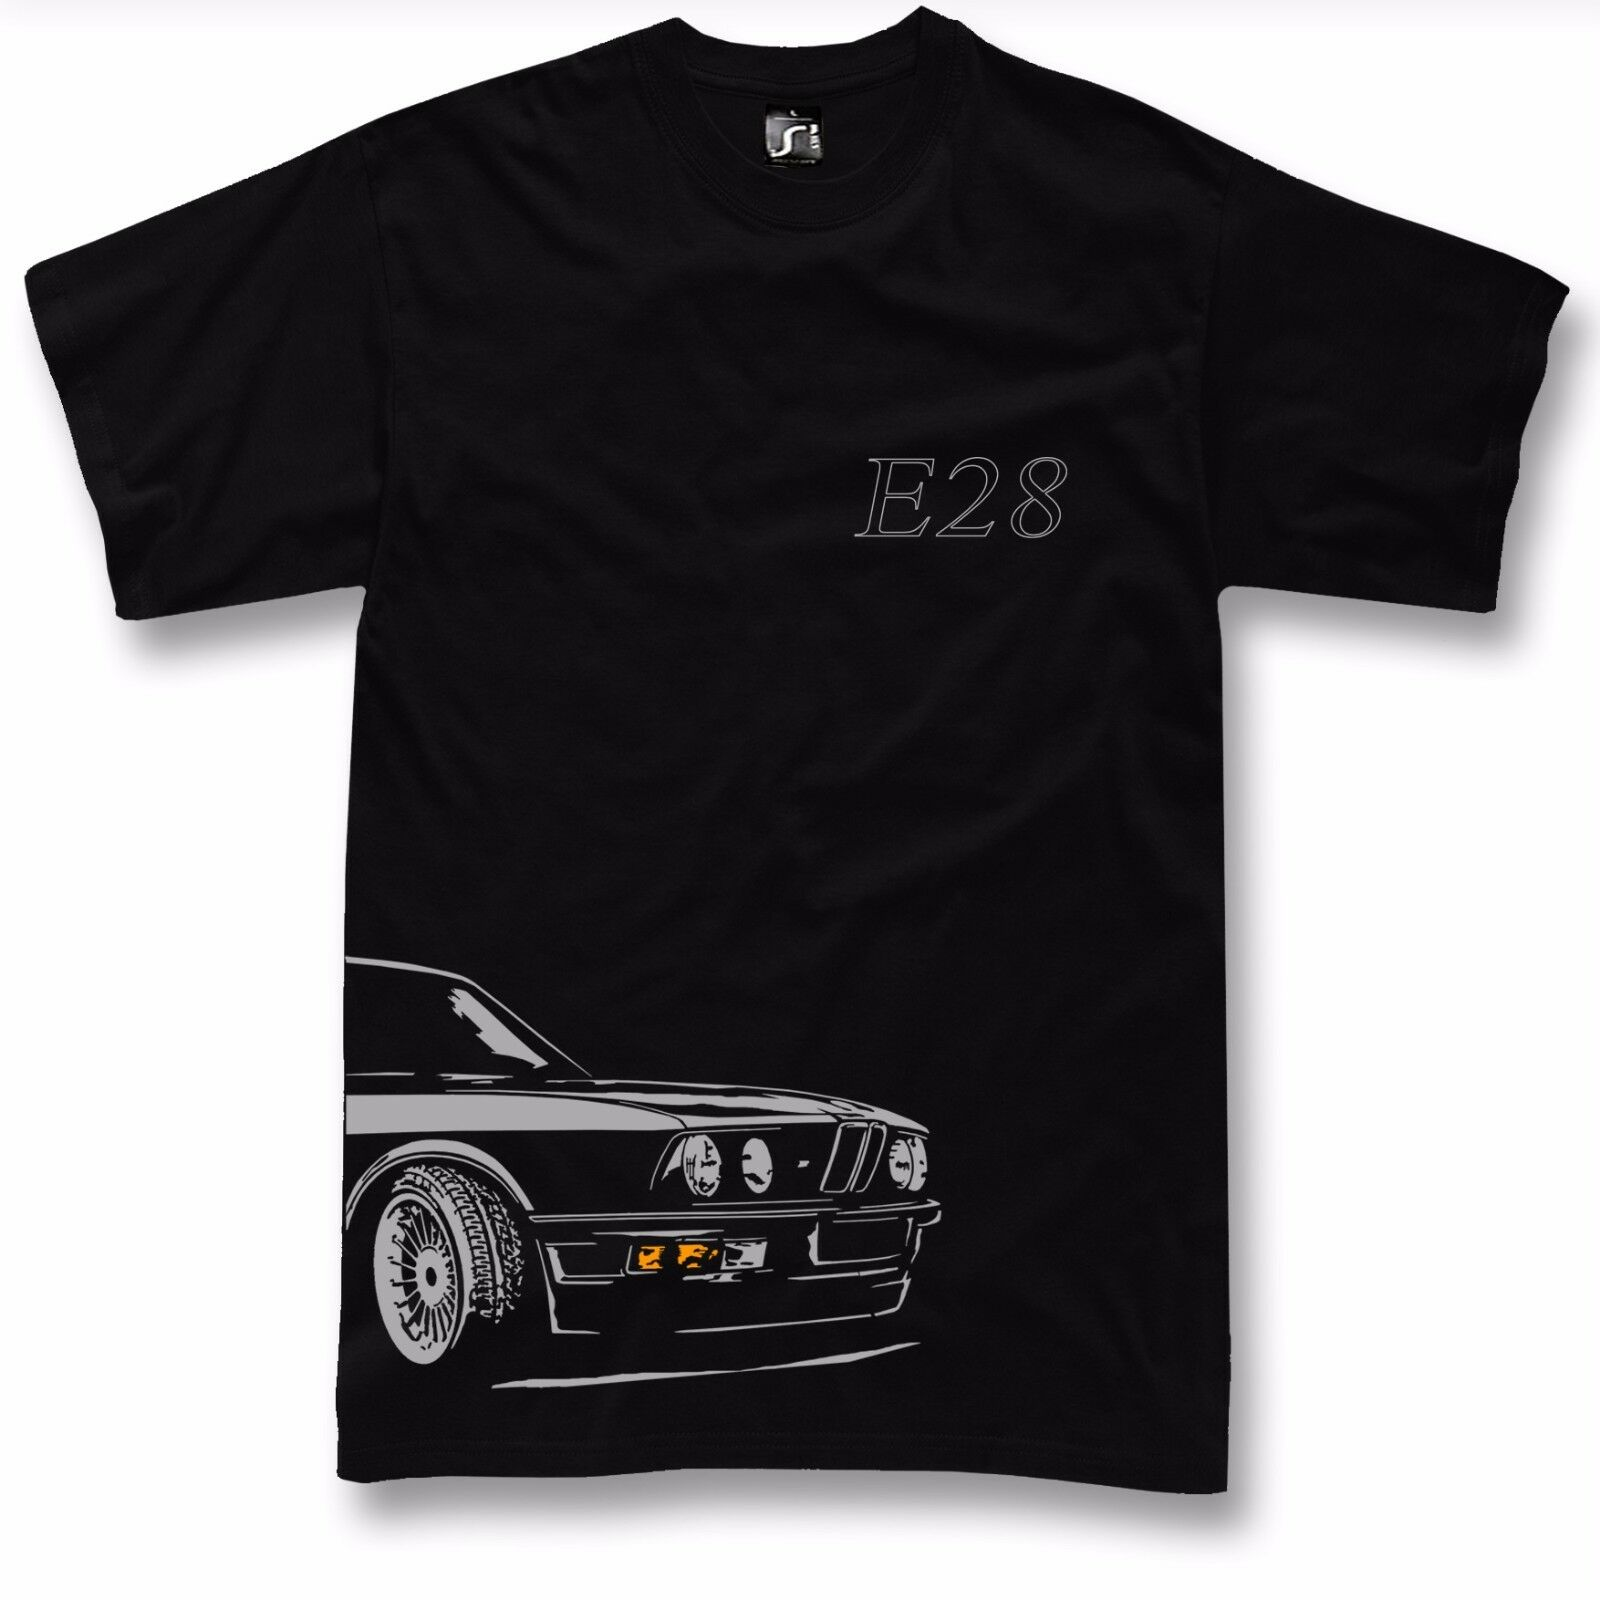 106ffaade98ac4 T-shirt for e28 fans 520 525 M535 t-shirt + long sleeve bmw M5 ...